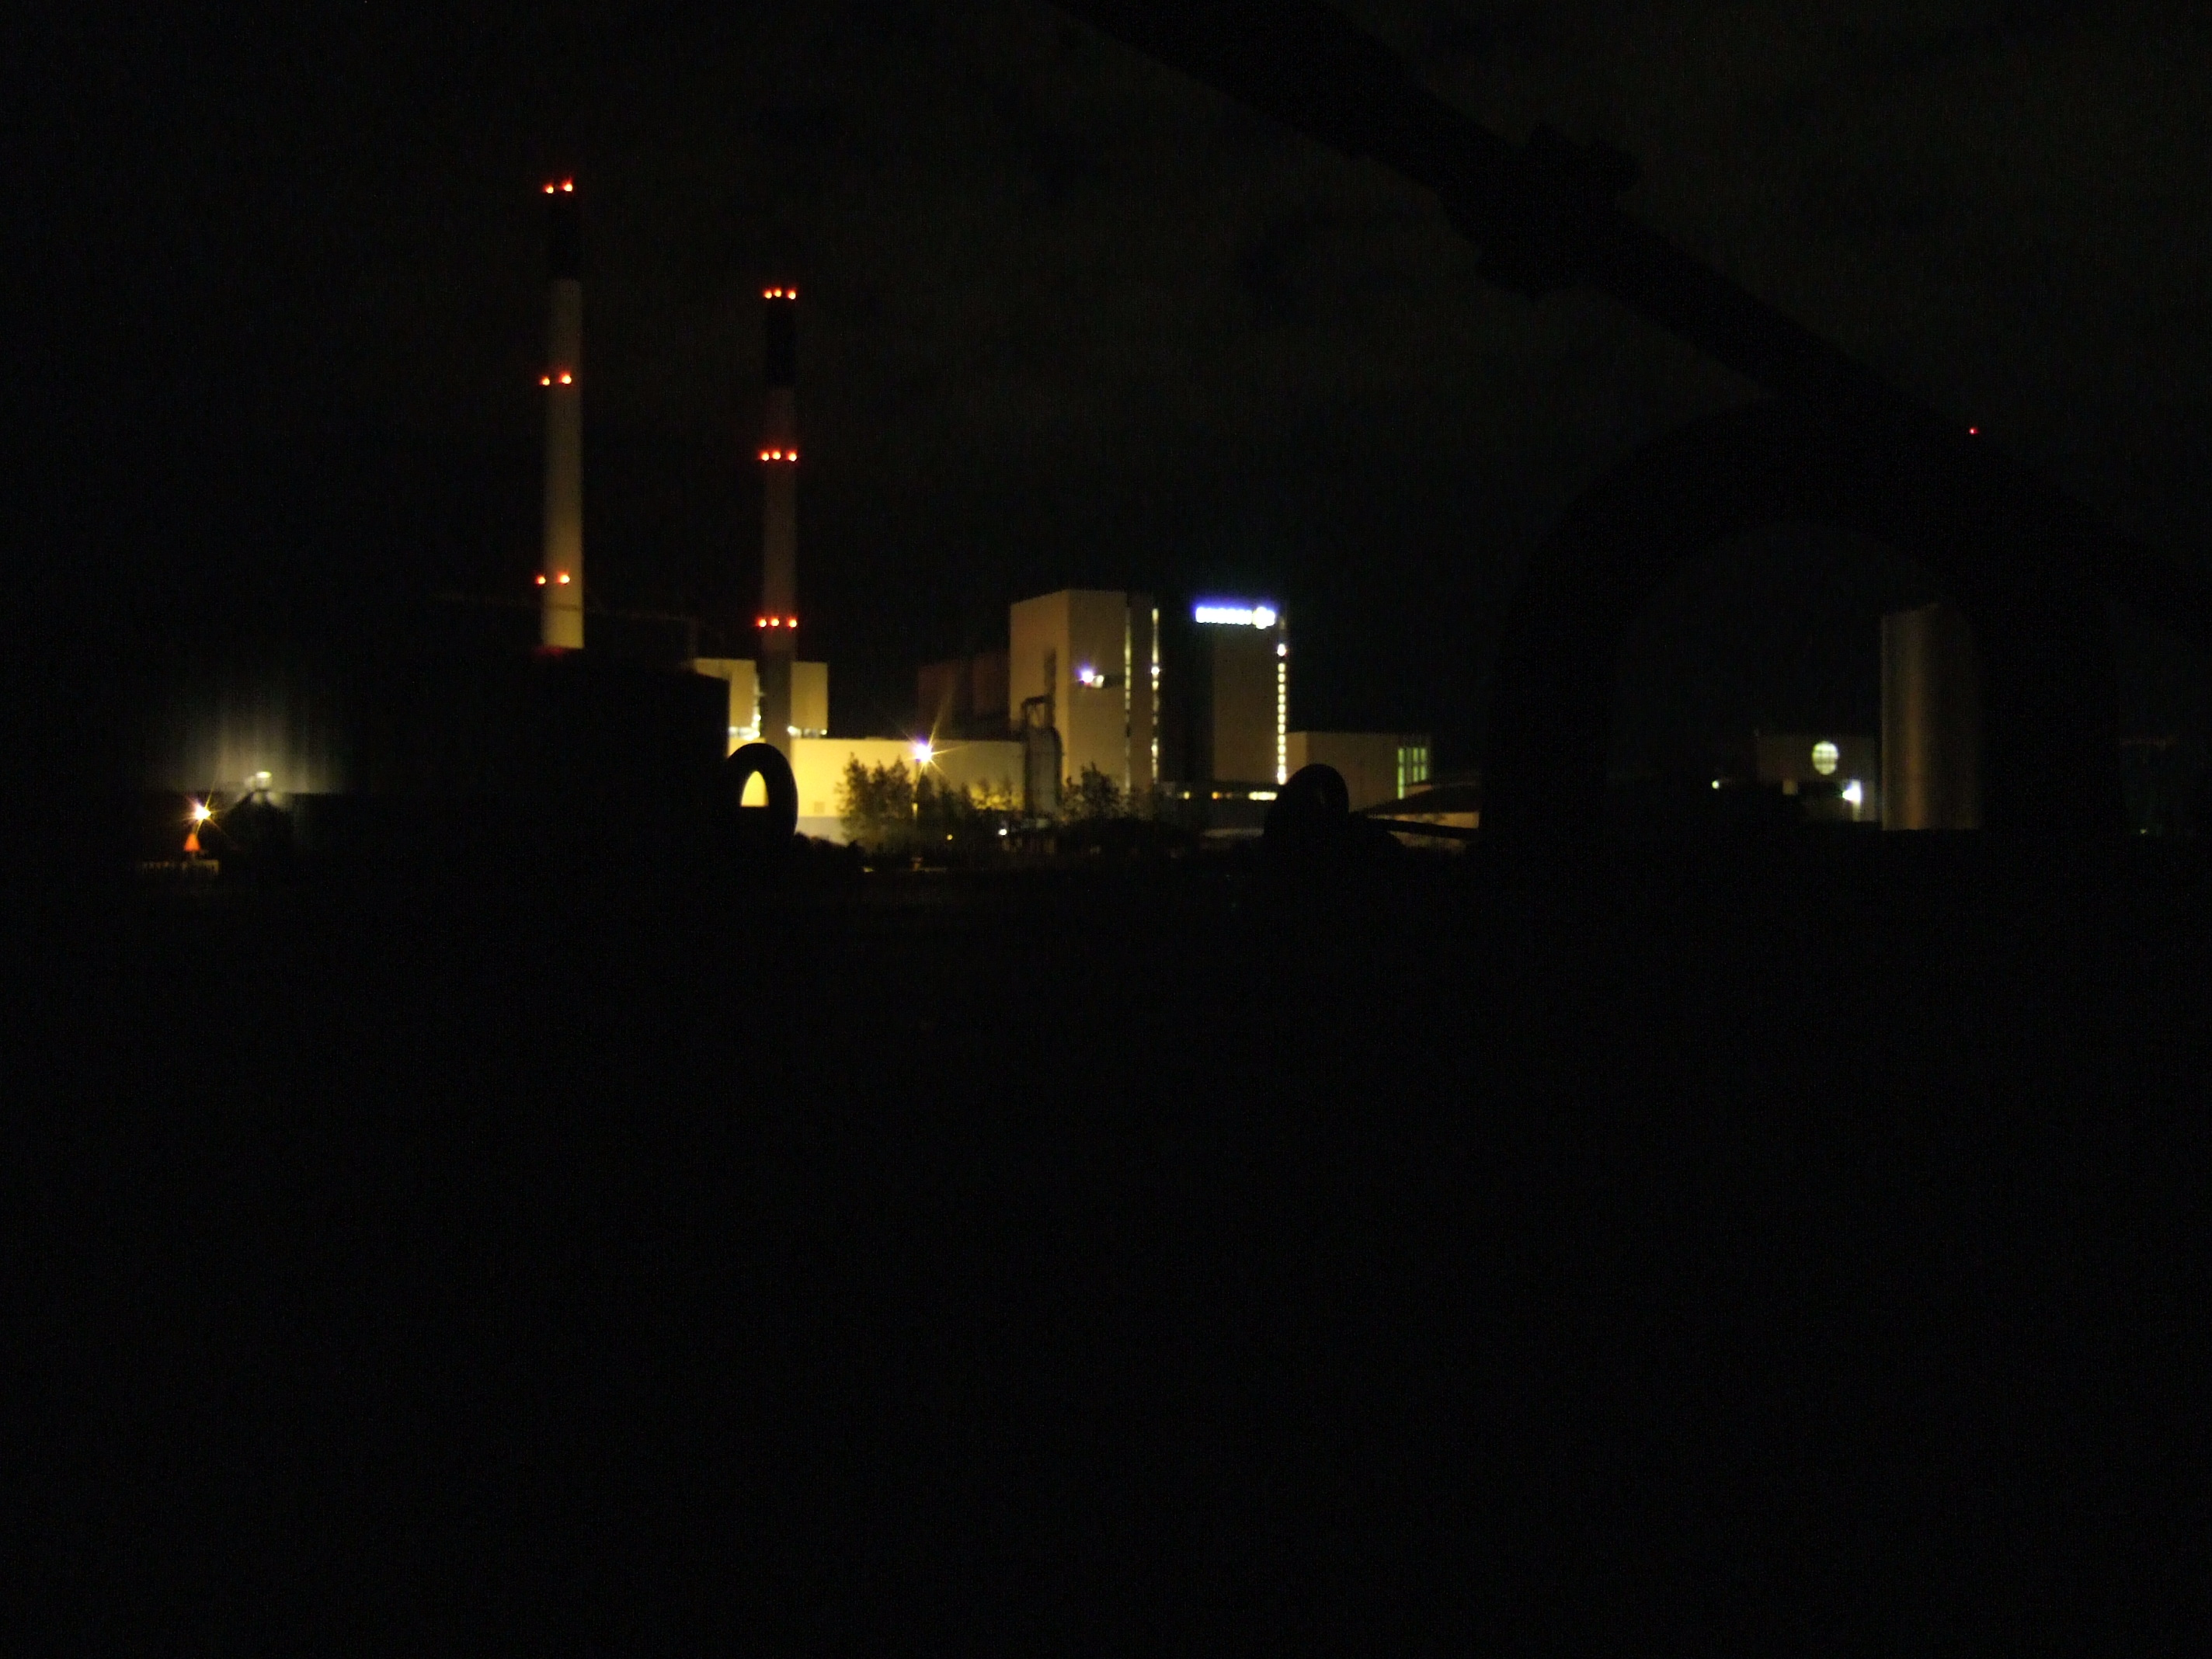 tabus industry at night power plant waste disposal